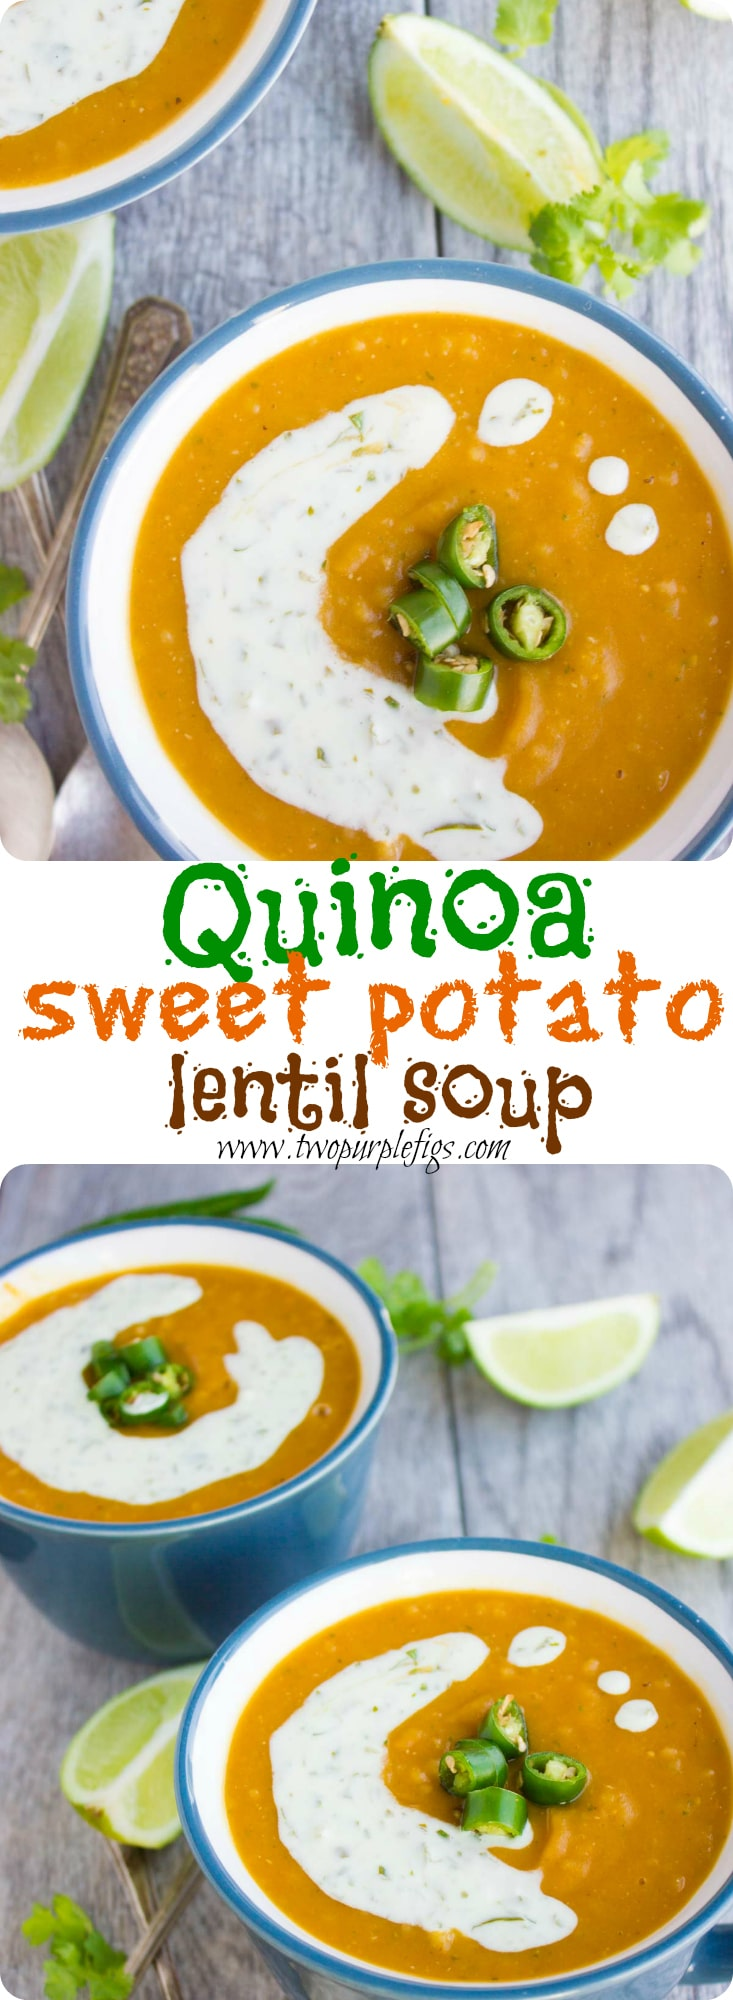 Quinoa Sweet Potato Lentil Soup | Enjoy a bowl of this healthy lentil soup with red lentils, sweet potatoes, apples and quinoa seeds! Drizzle this filling fall-inspired soup with my refreshing and tangy cilantro & lime cream to take your soup game to the next level! #soup, #fall, #dinner, #easy, #starter, #creamy, #Mexican, #lentils,